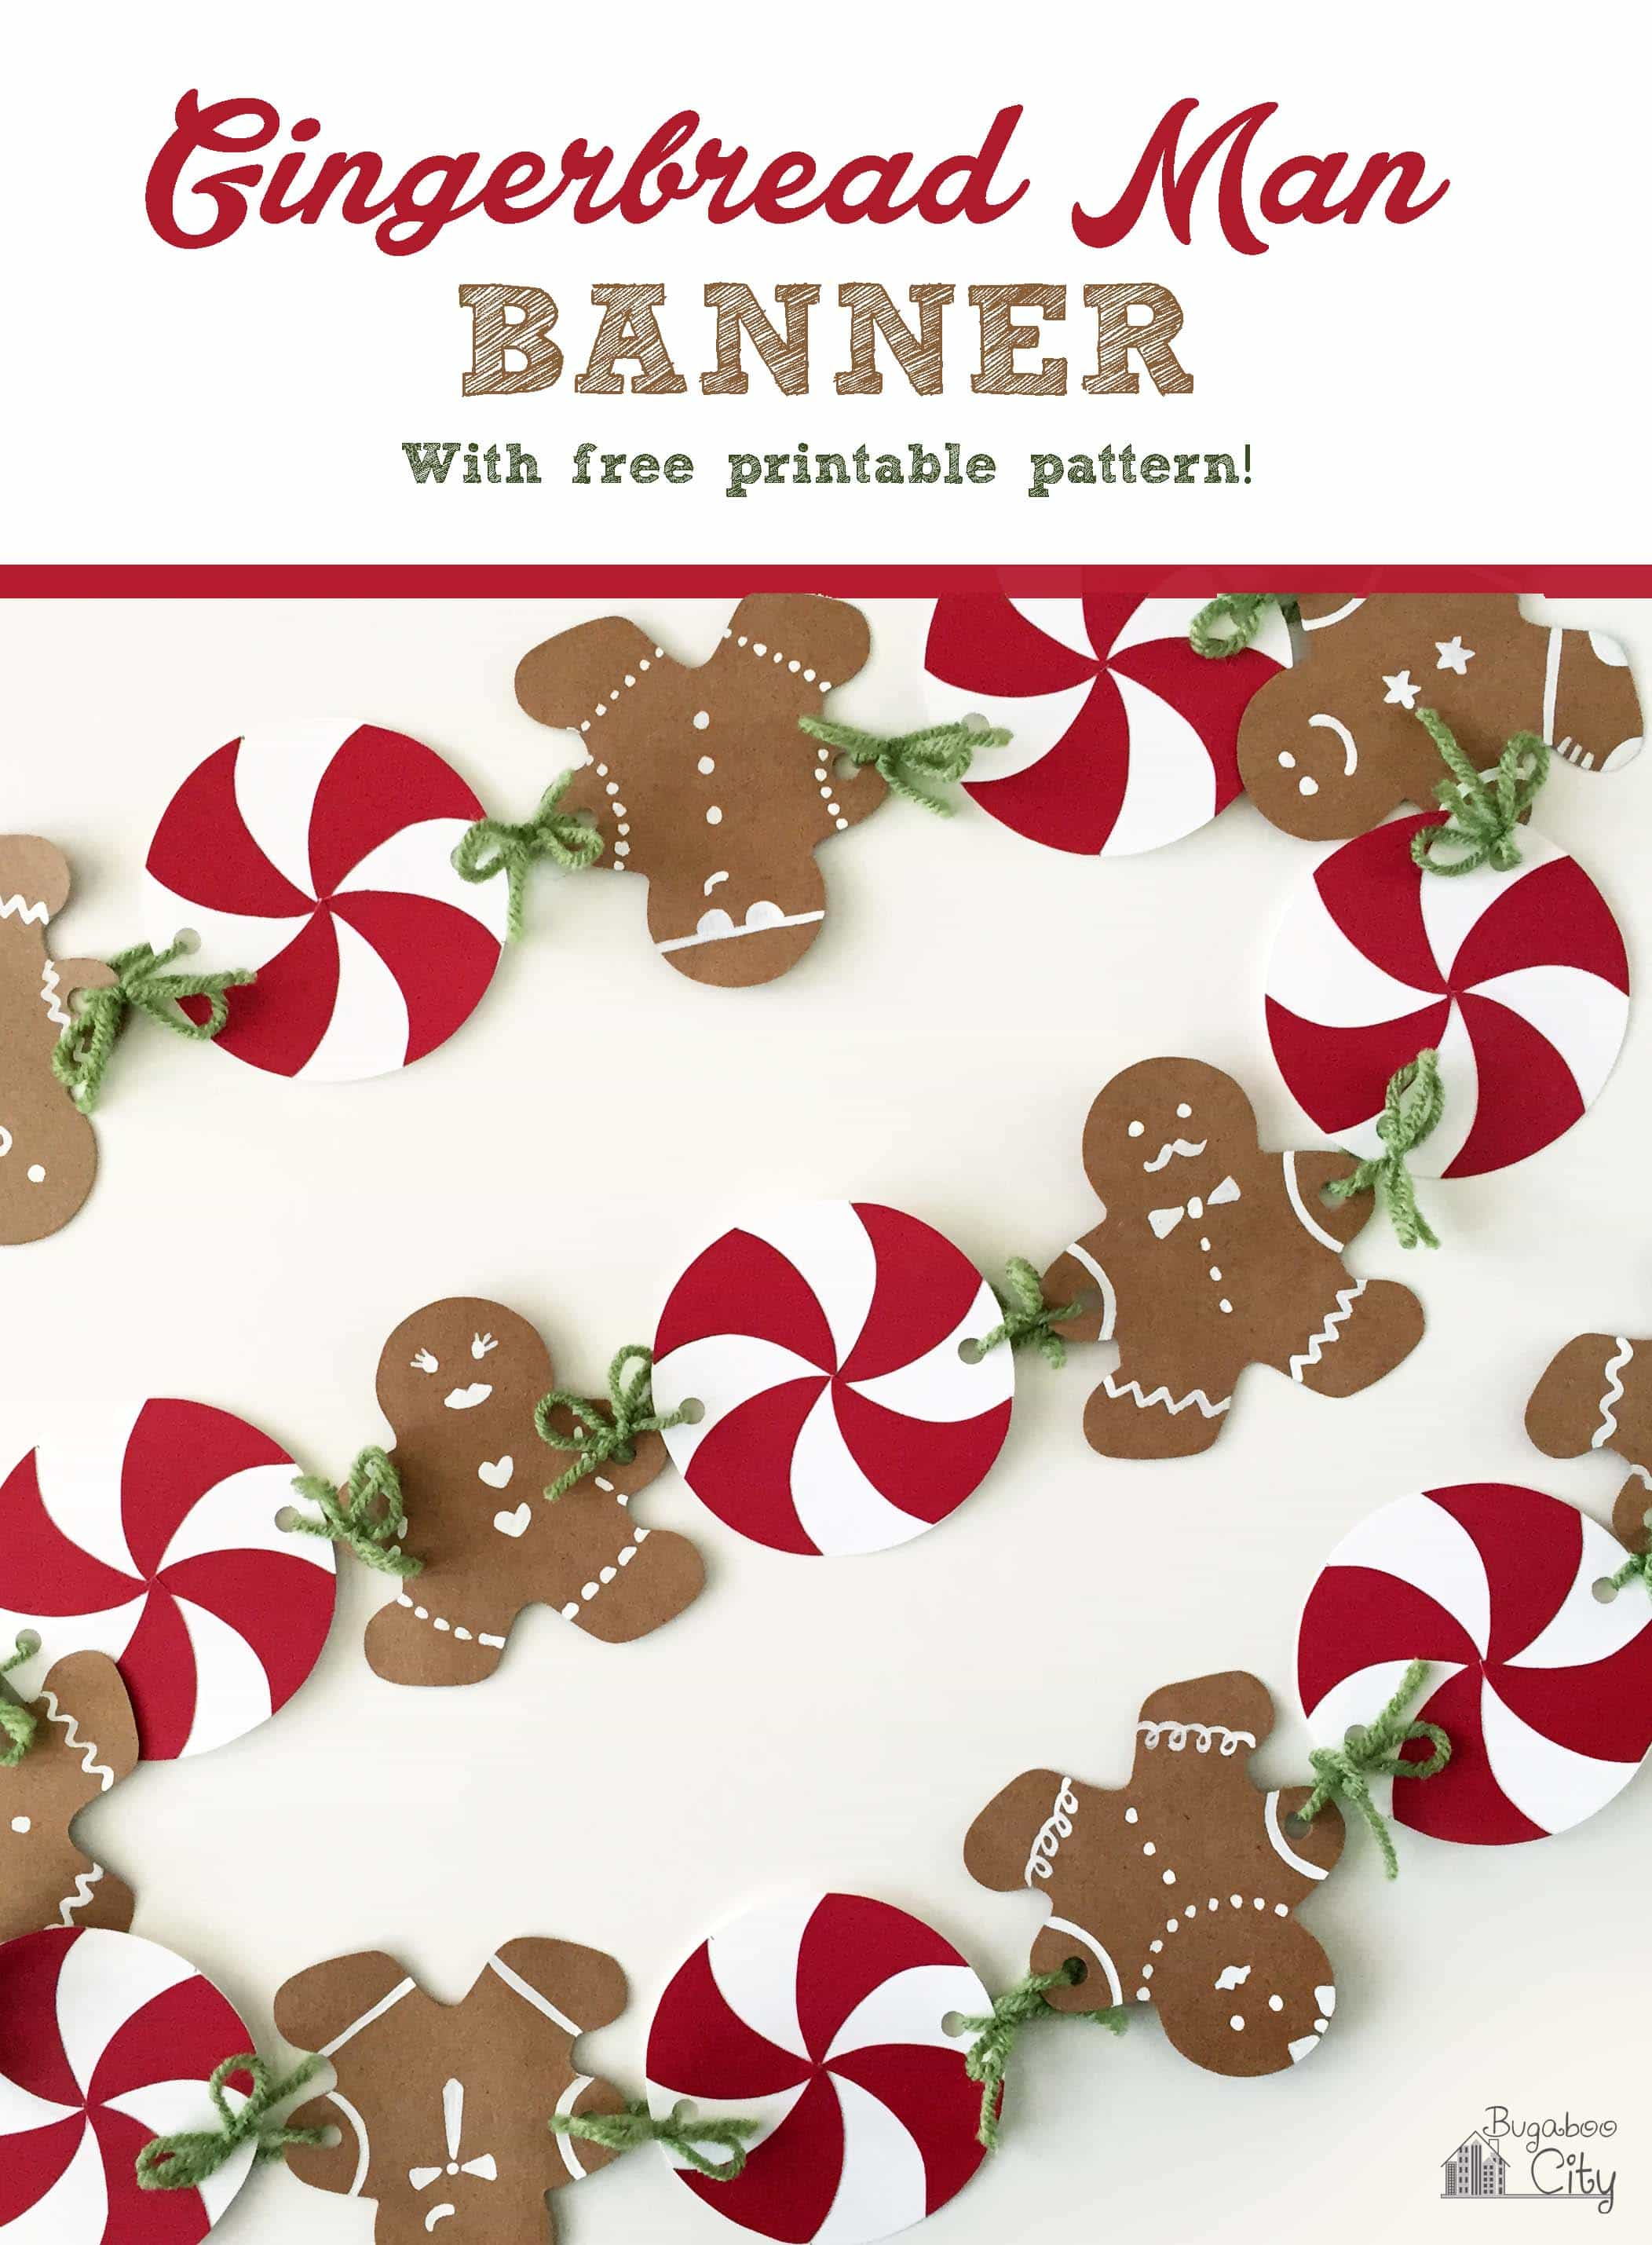 Gingerbread-man-banner-with-free-printable-pattern